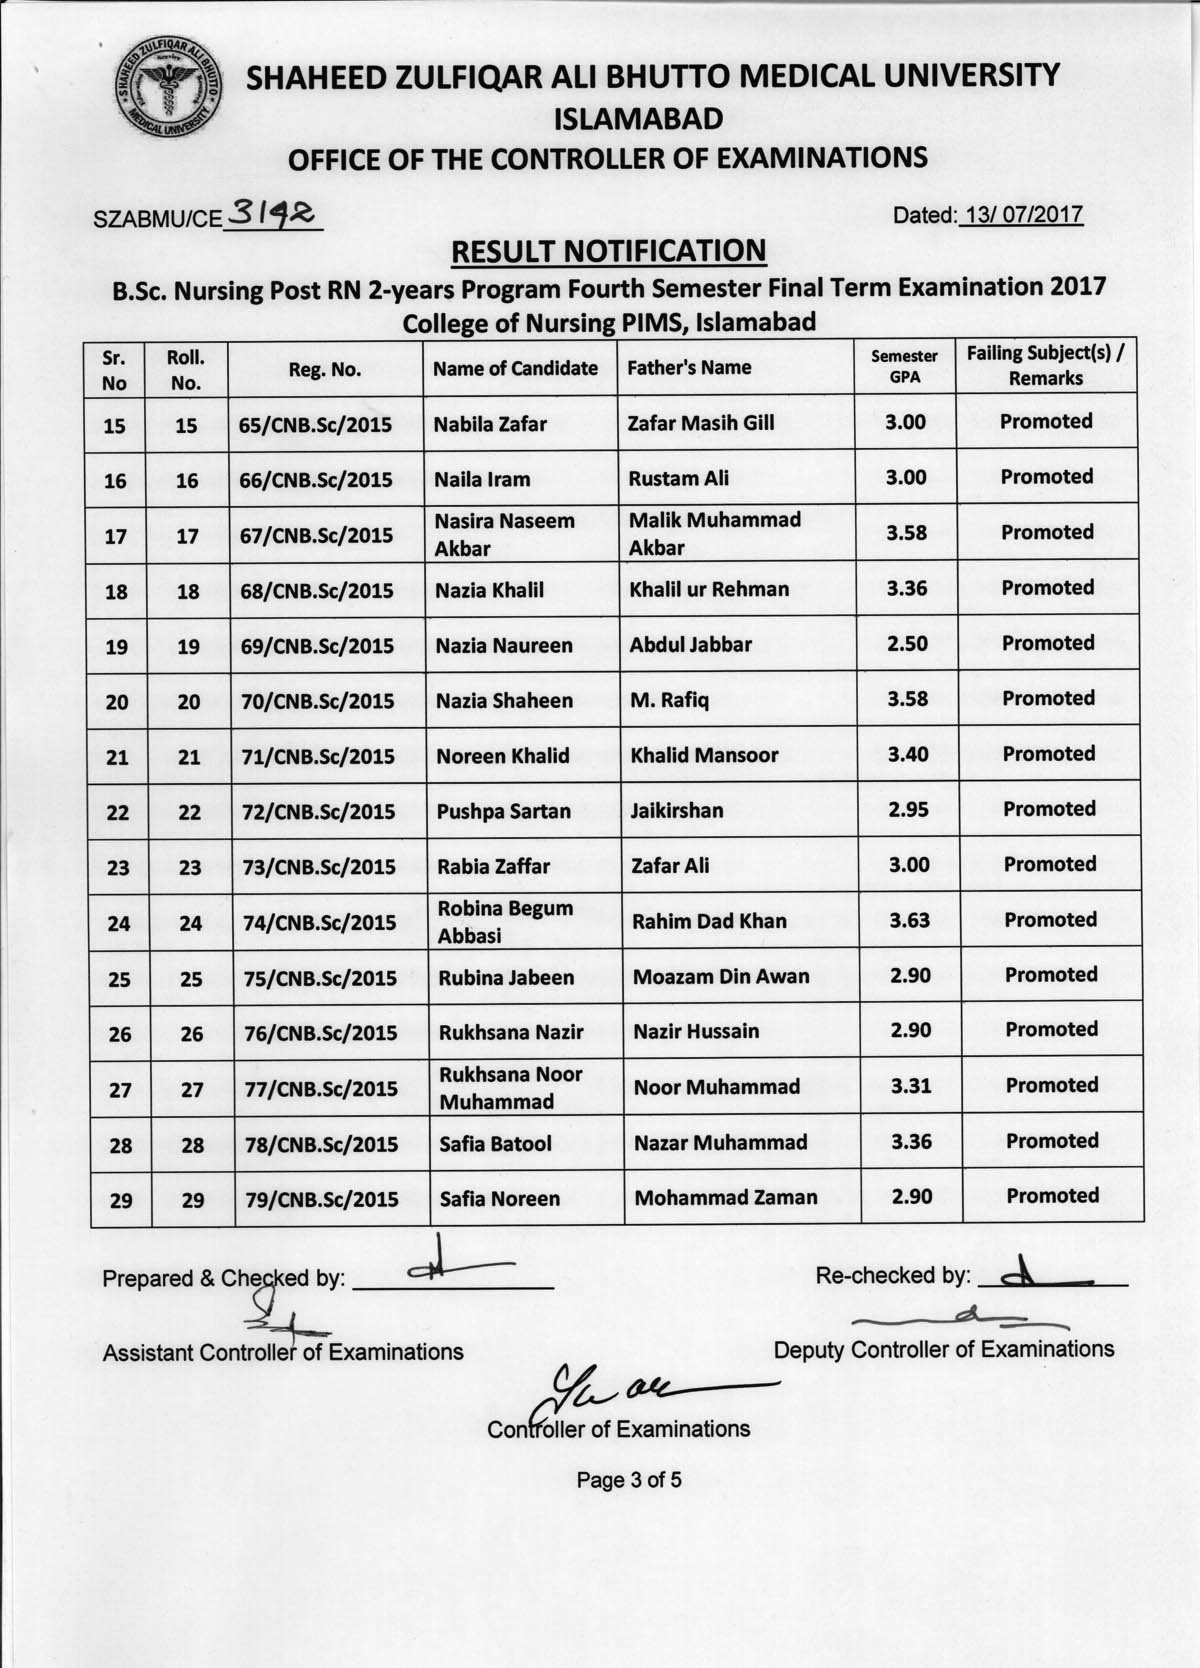 B.Sc. Nursing Post RN 4th Semester Final Term Examination 2017